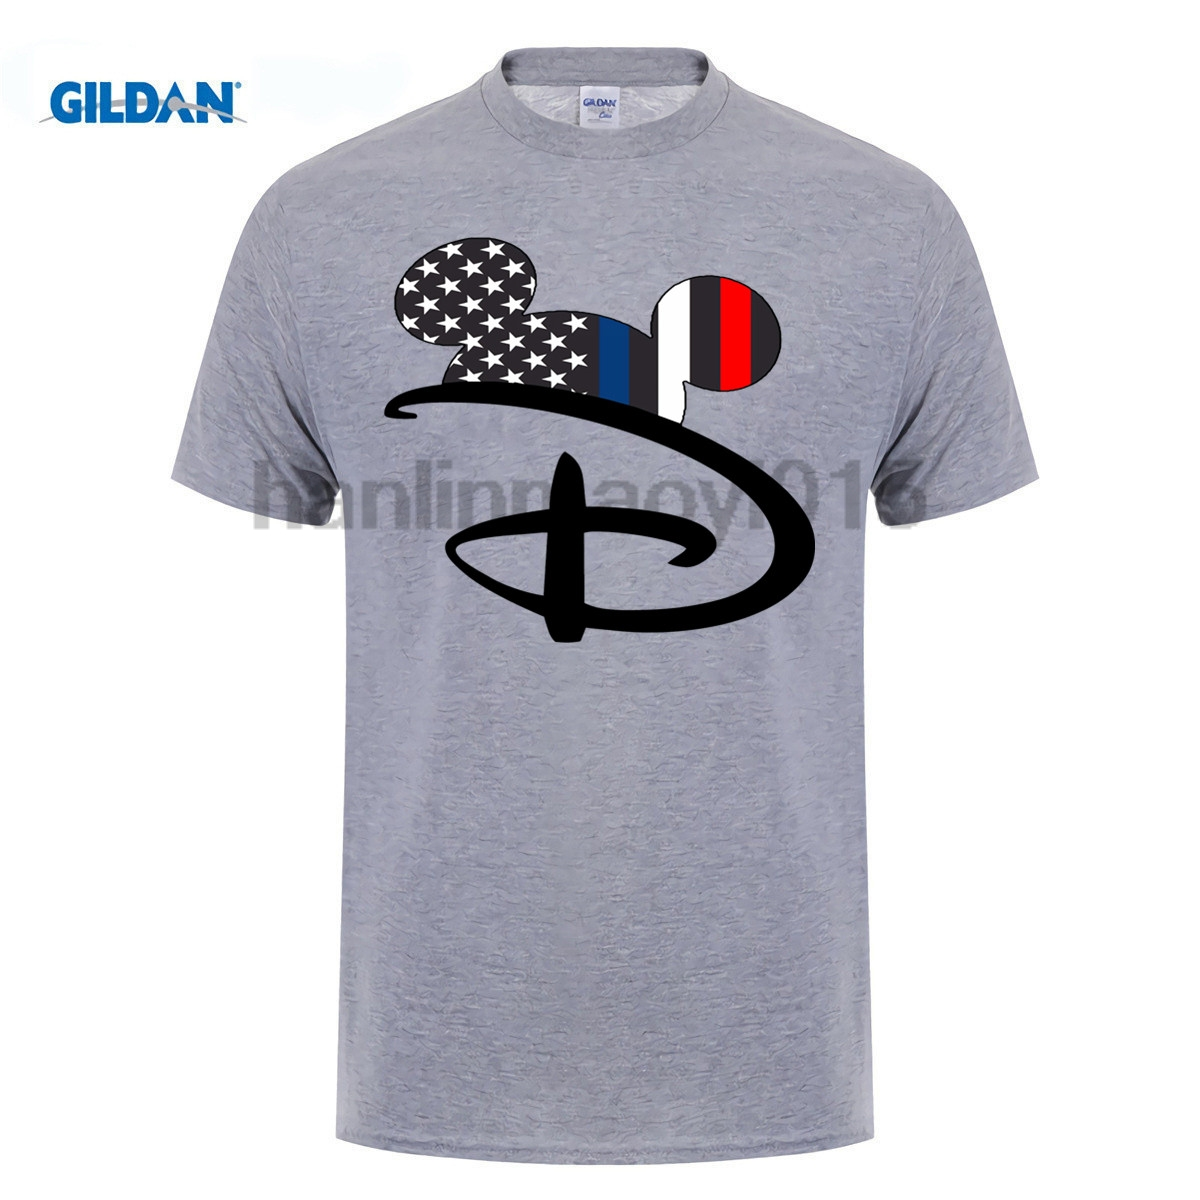 GILDAN 100% Cotton O-neck printed T-shirt Mickey Ears Support Law Enforcement T-Shirt ...